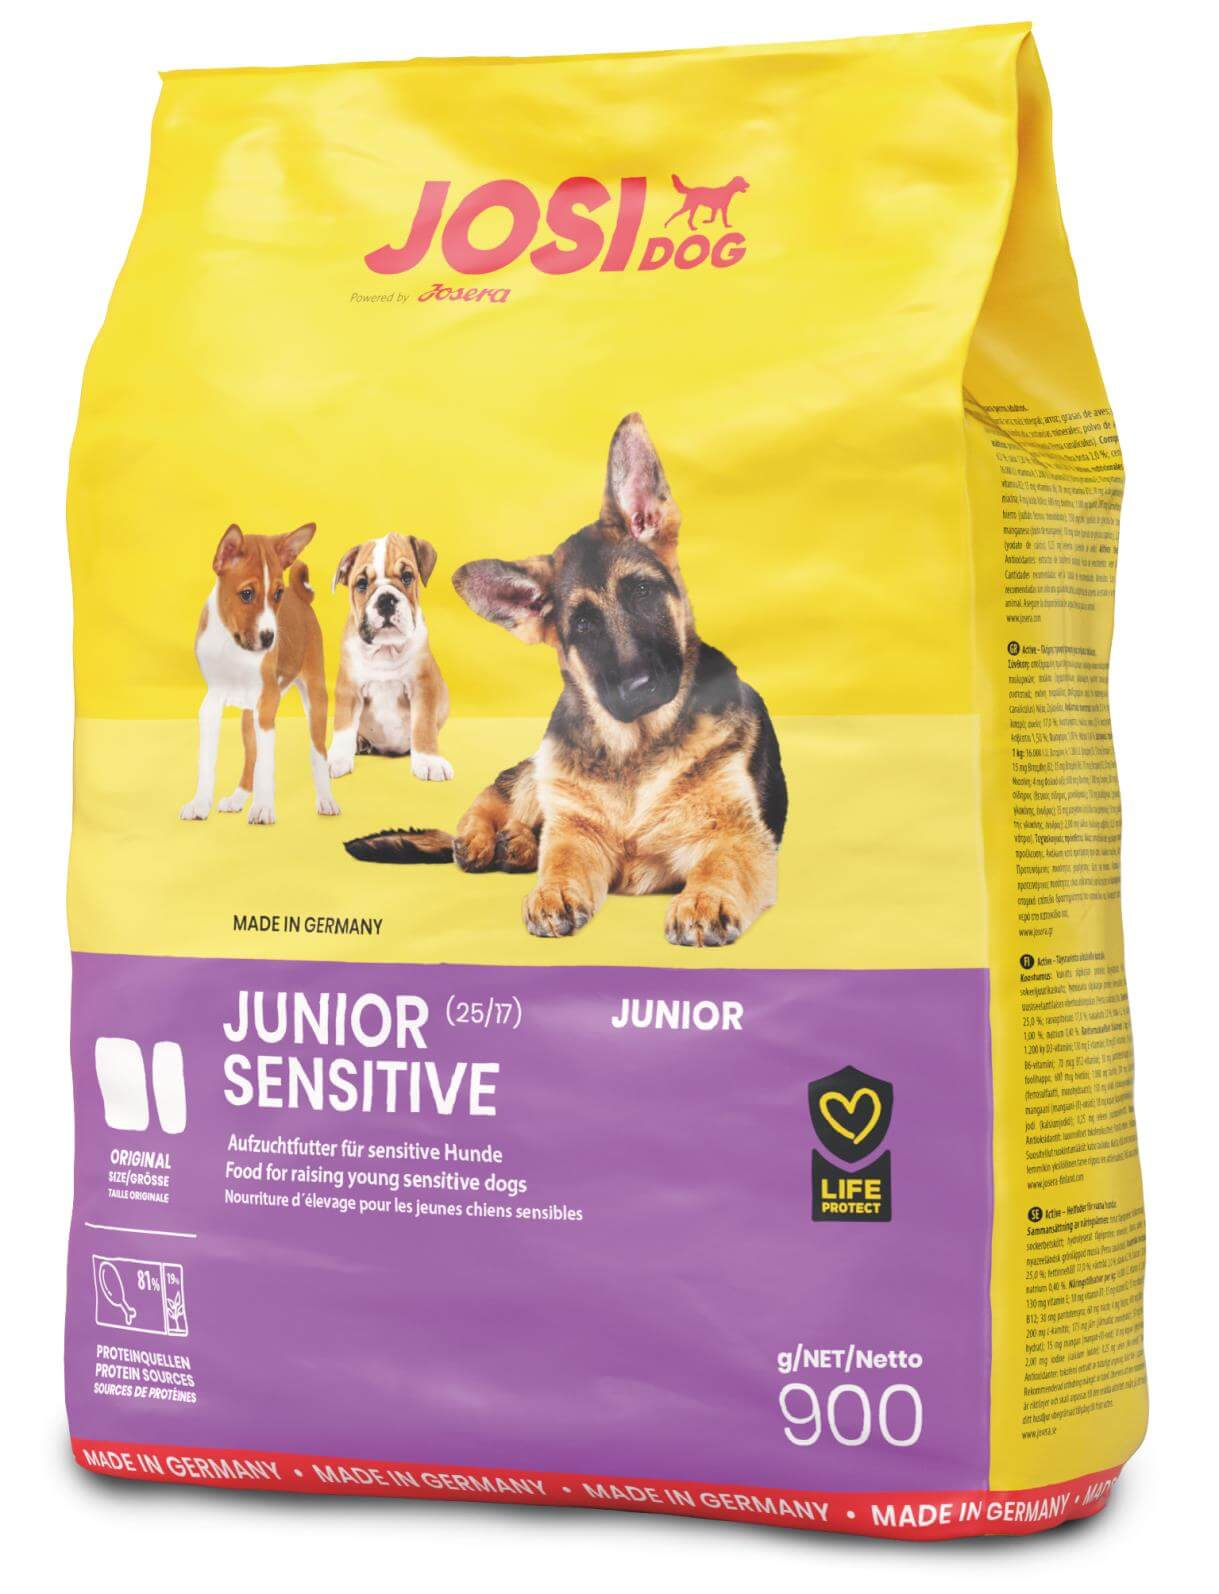 josidog-junior-sensitive-900g_01